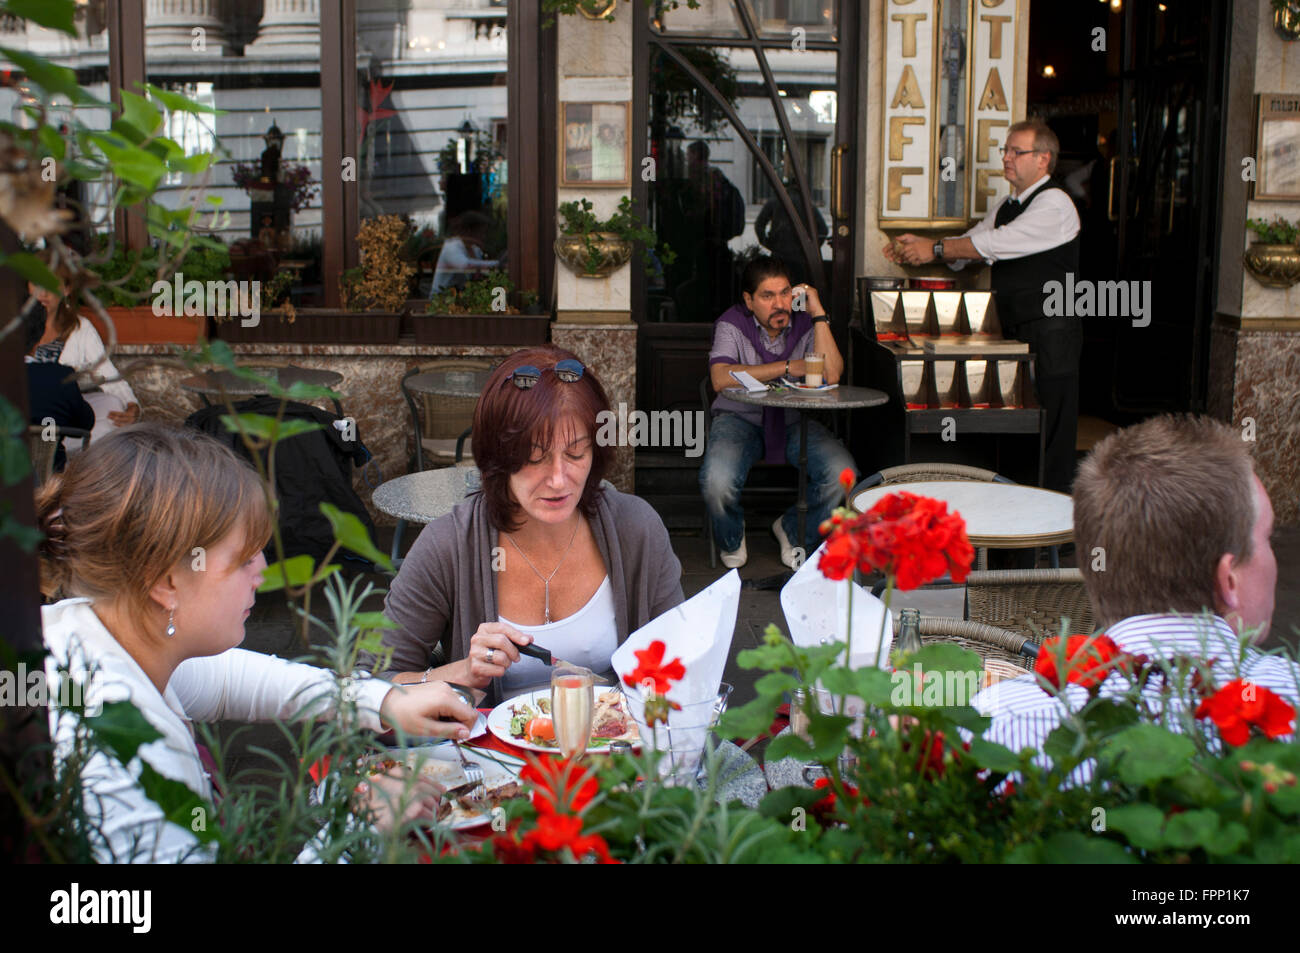 People eating in the terrace of Le Falstaff, Brussels, Belgium. One of the terraces of the many restaurants in Brussels. - Stock Image